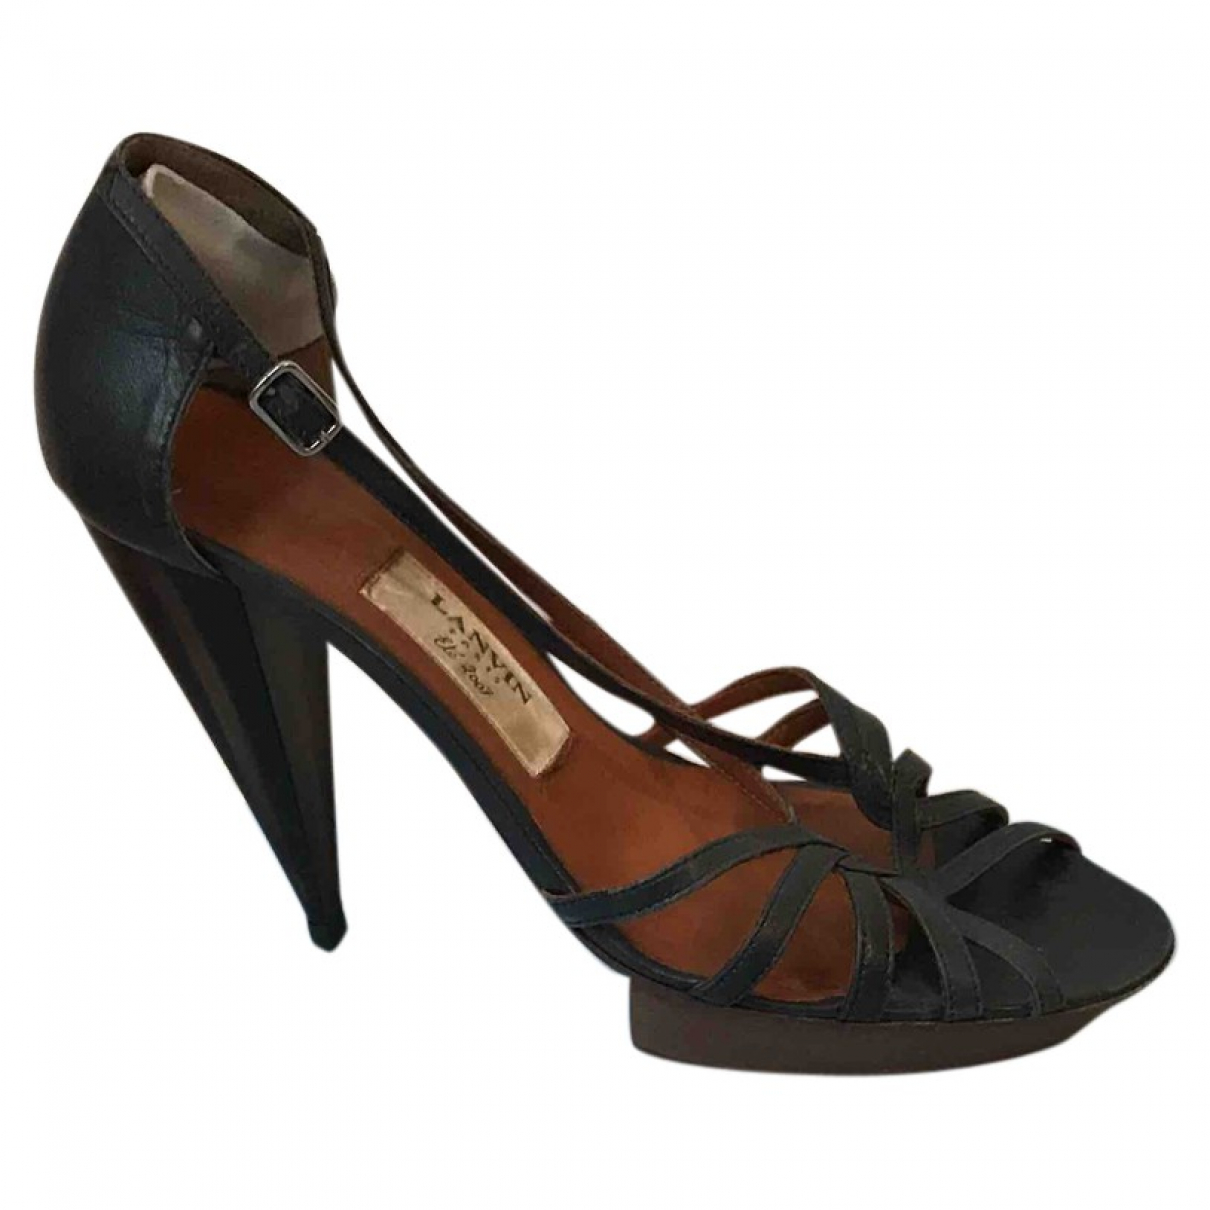 Lanvin \N Navy Leather Sandals for Women 38 EU